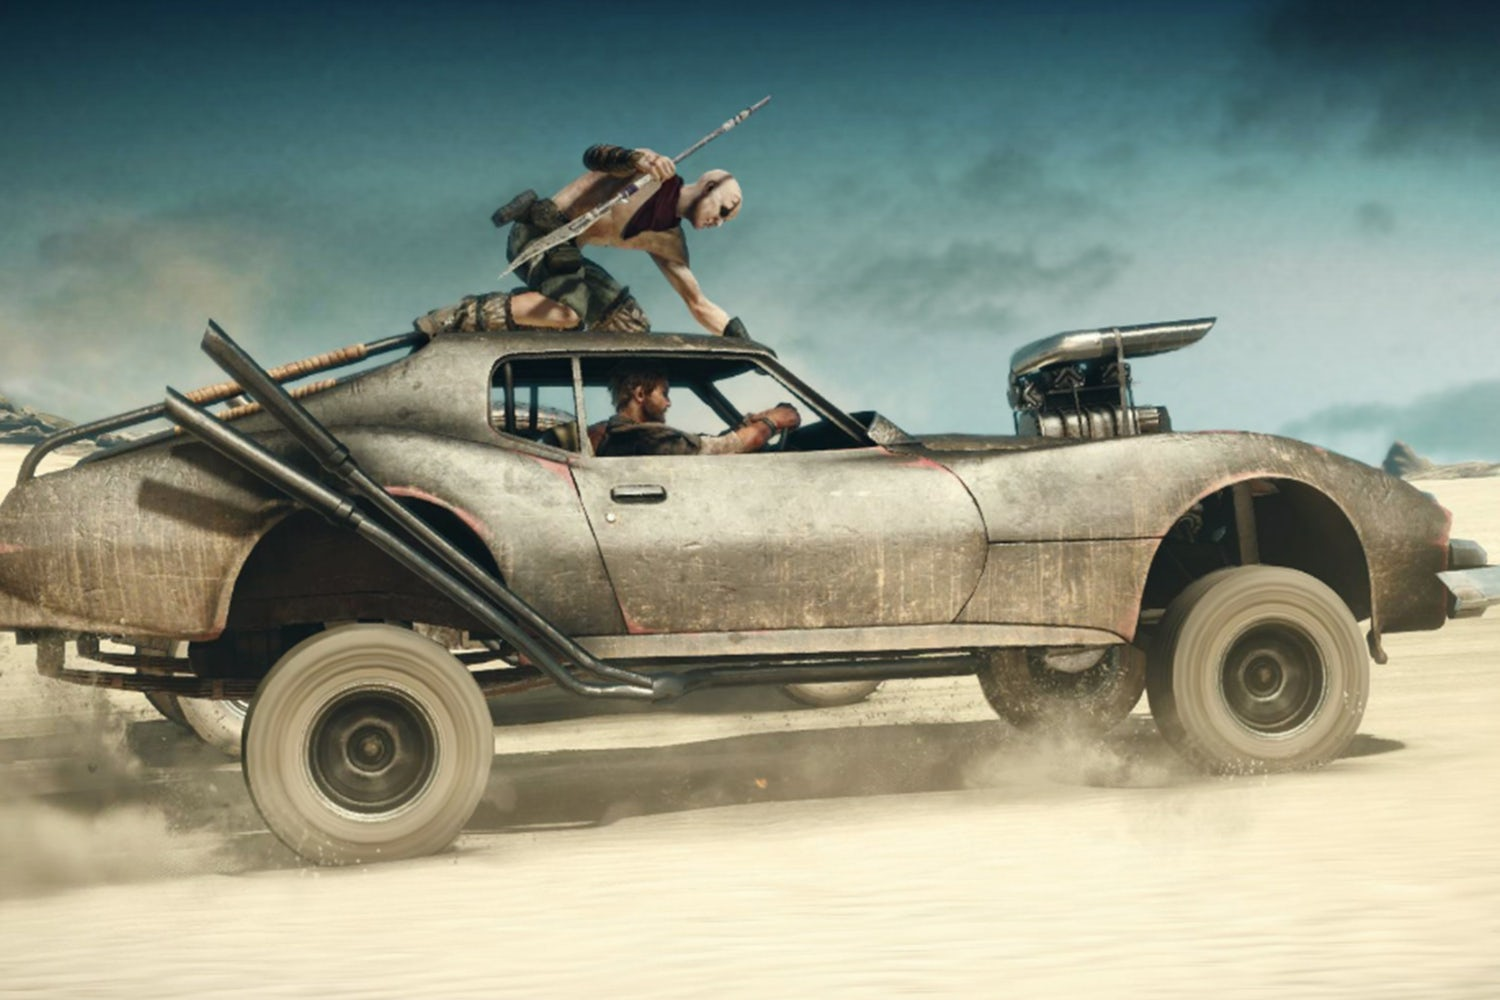 games like fallout mad max